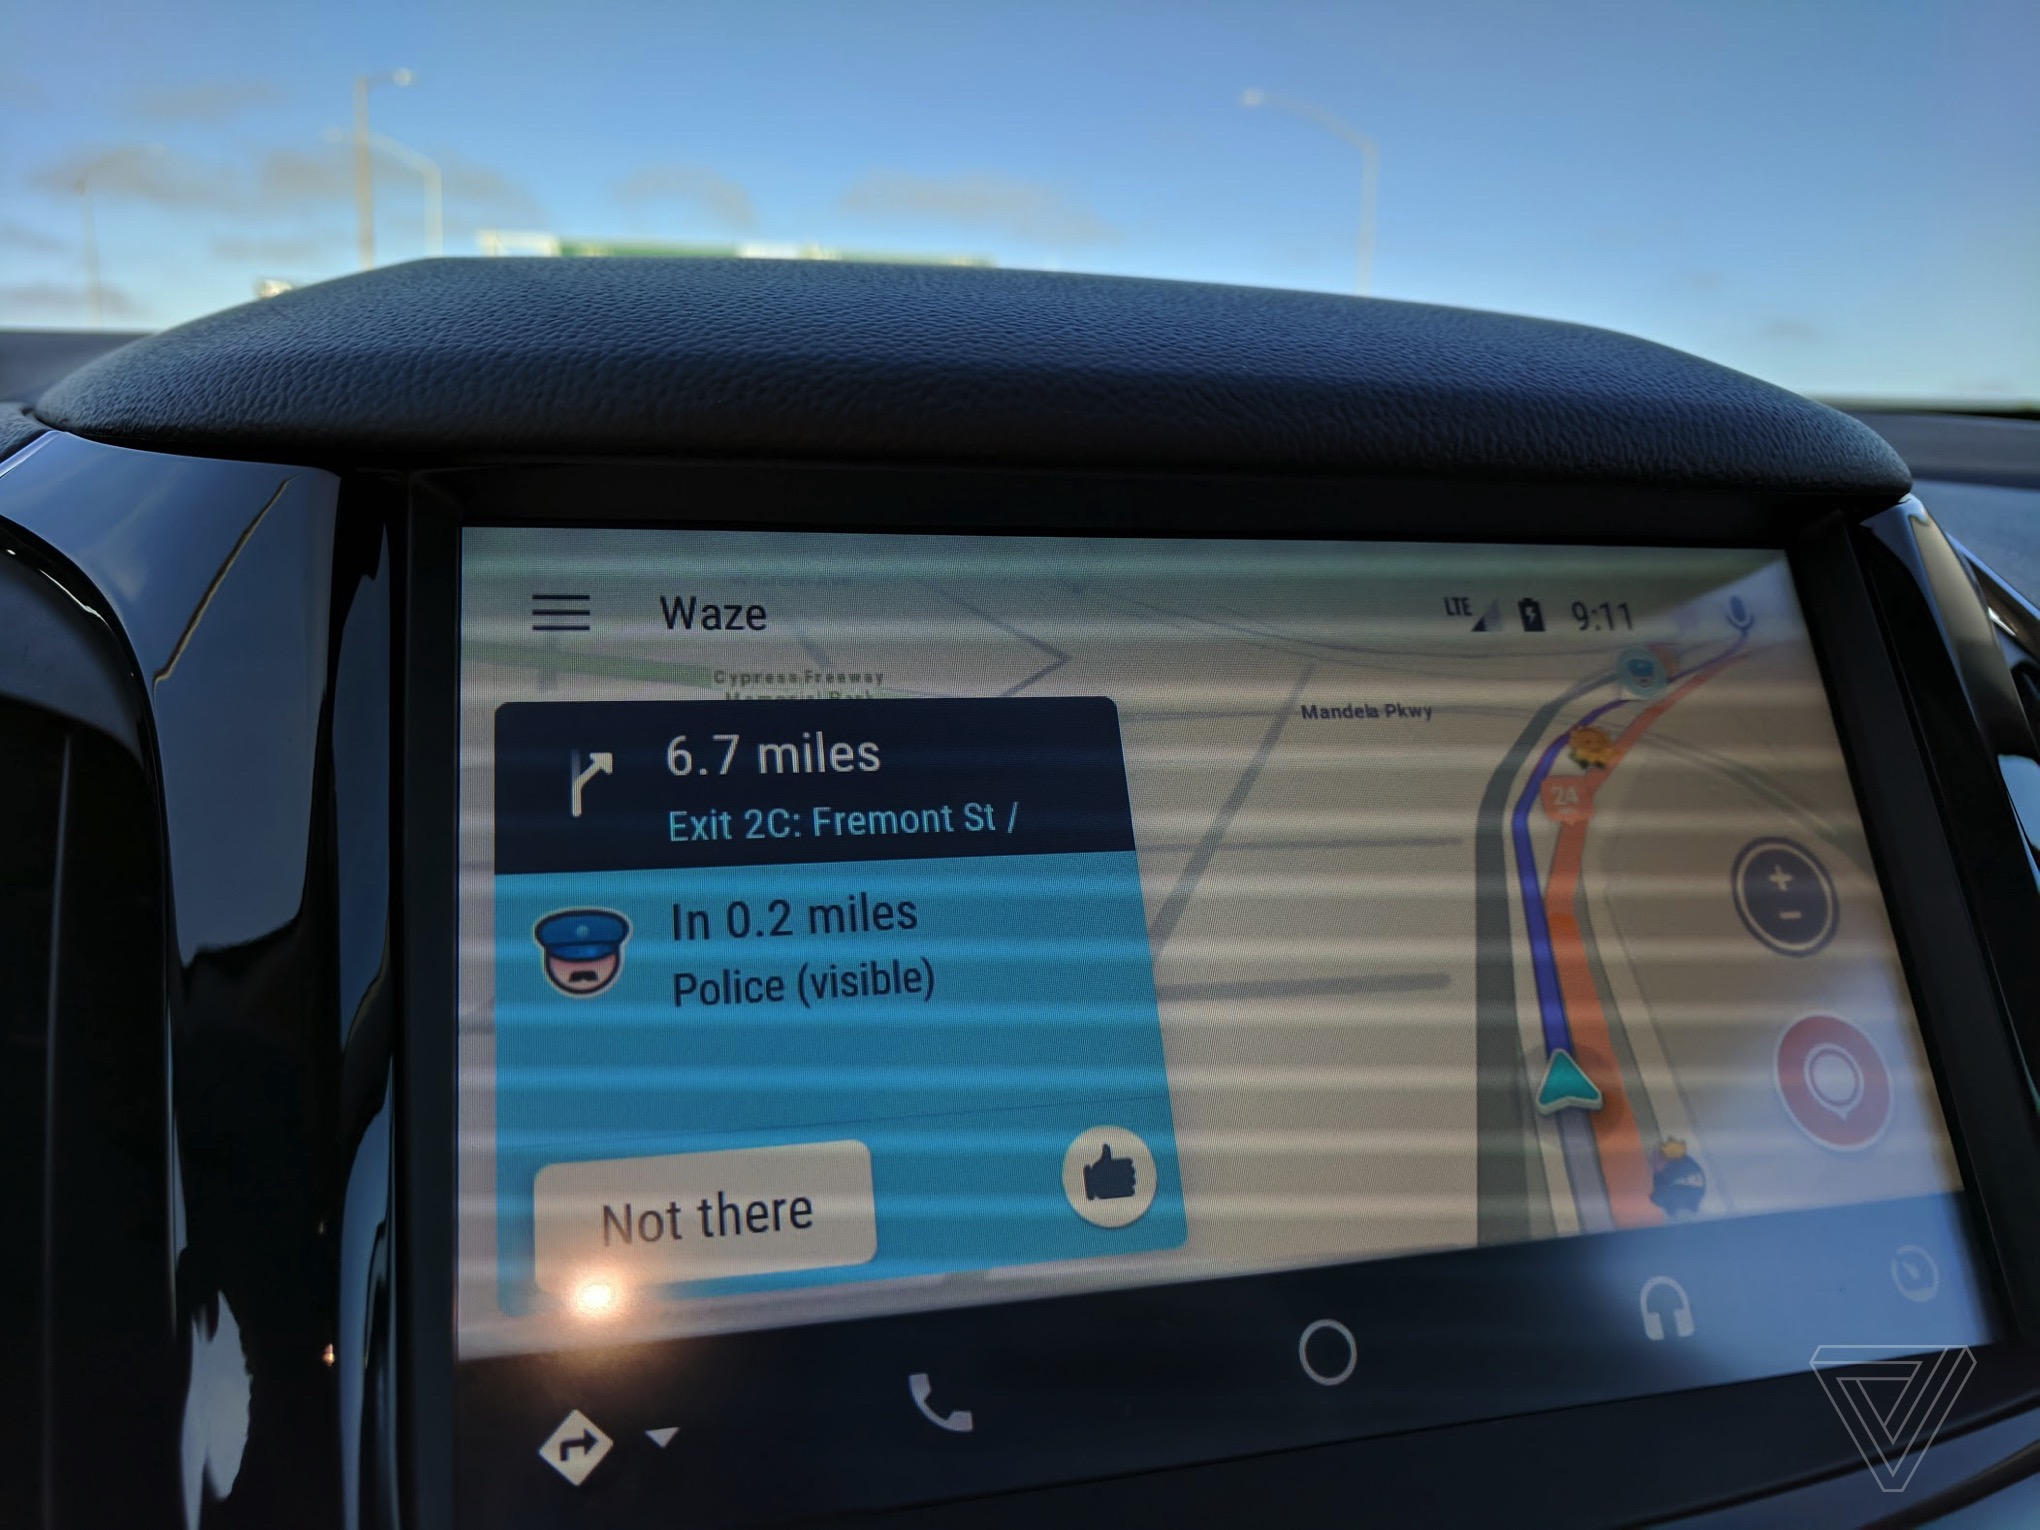 You Can Now Use Waze Right From Android Auto in Your Car